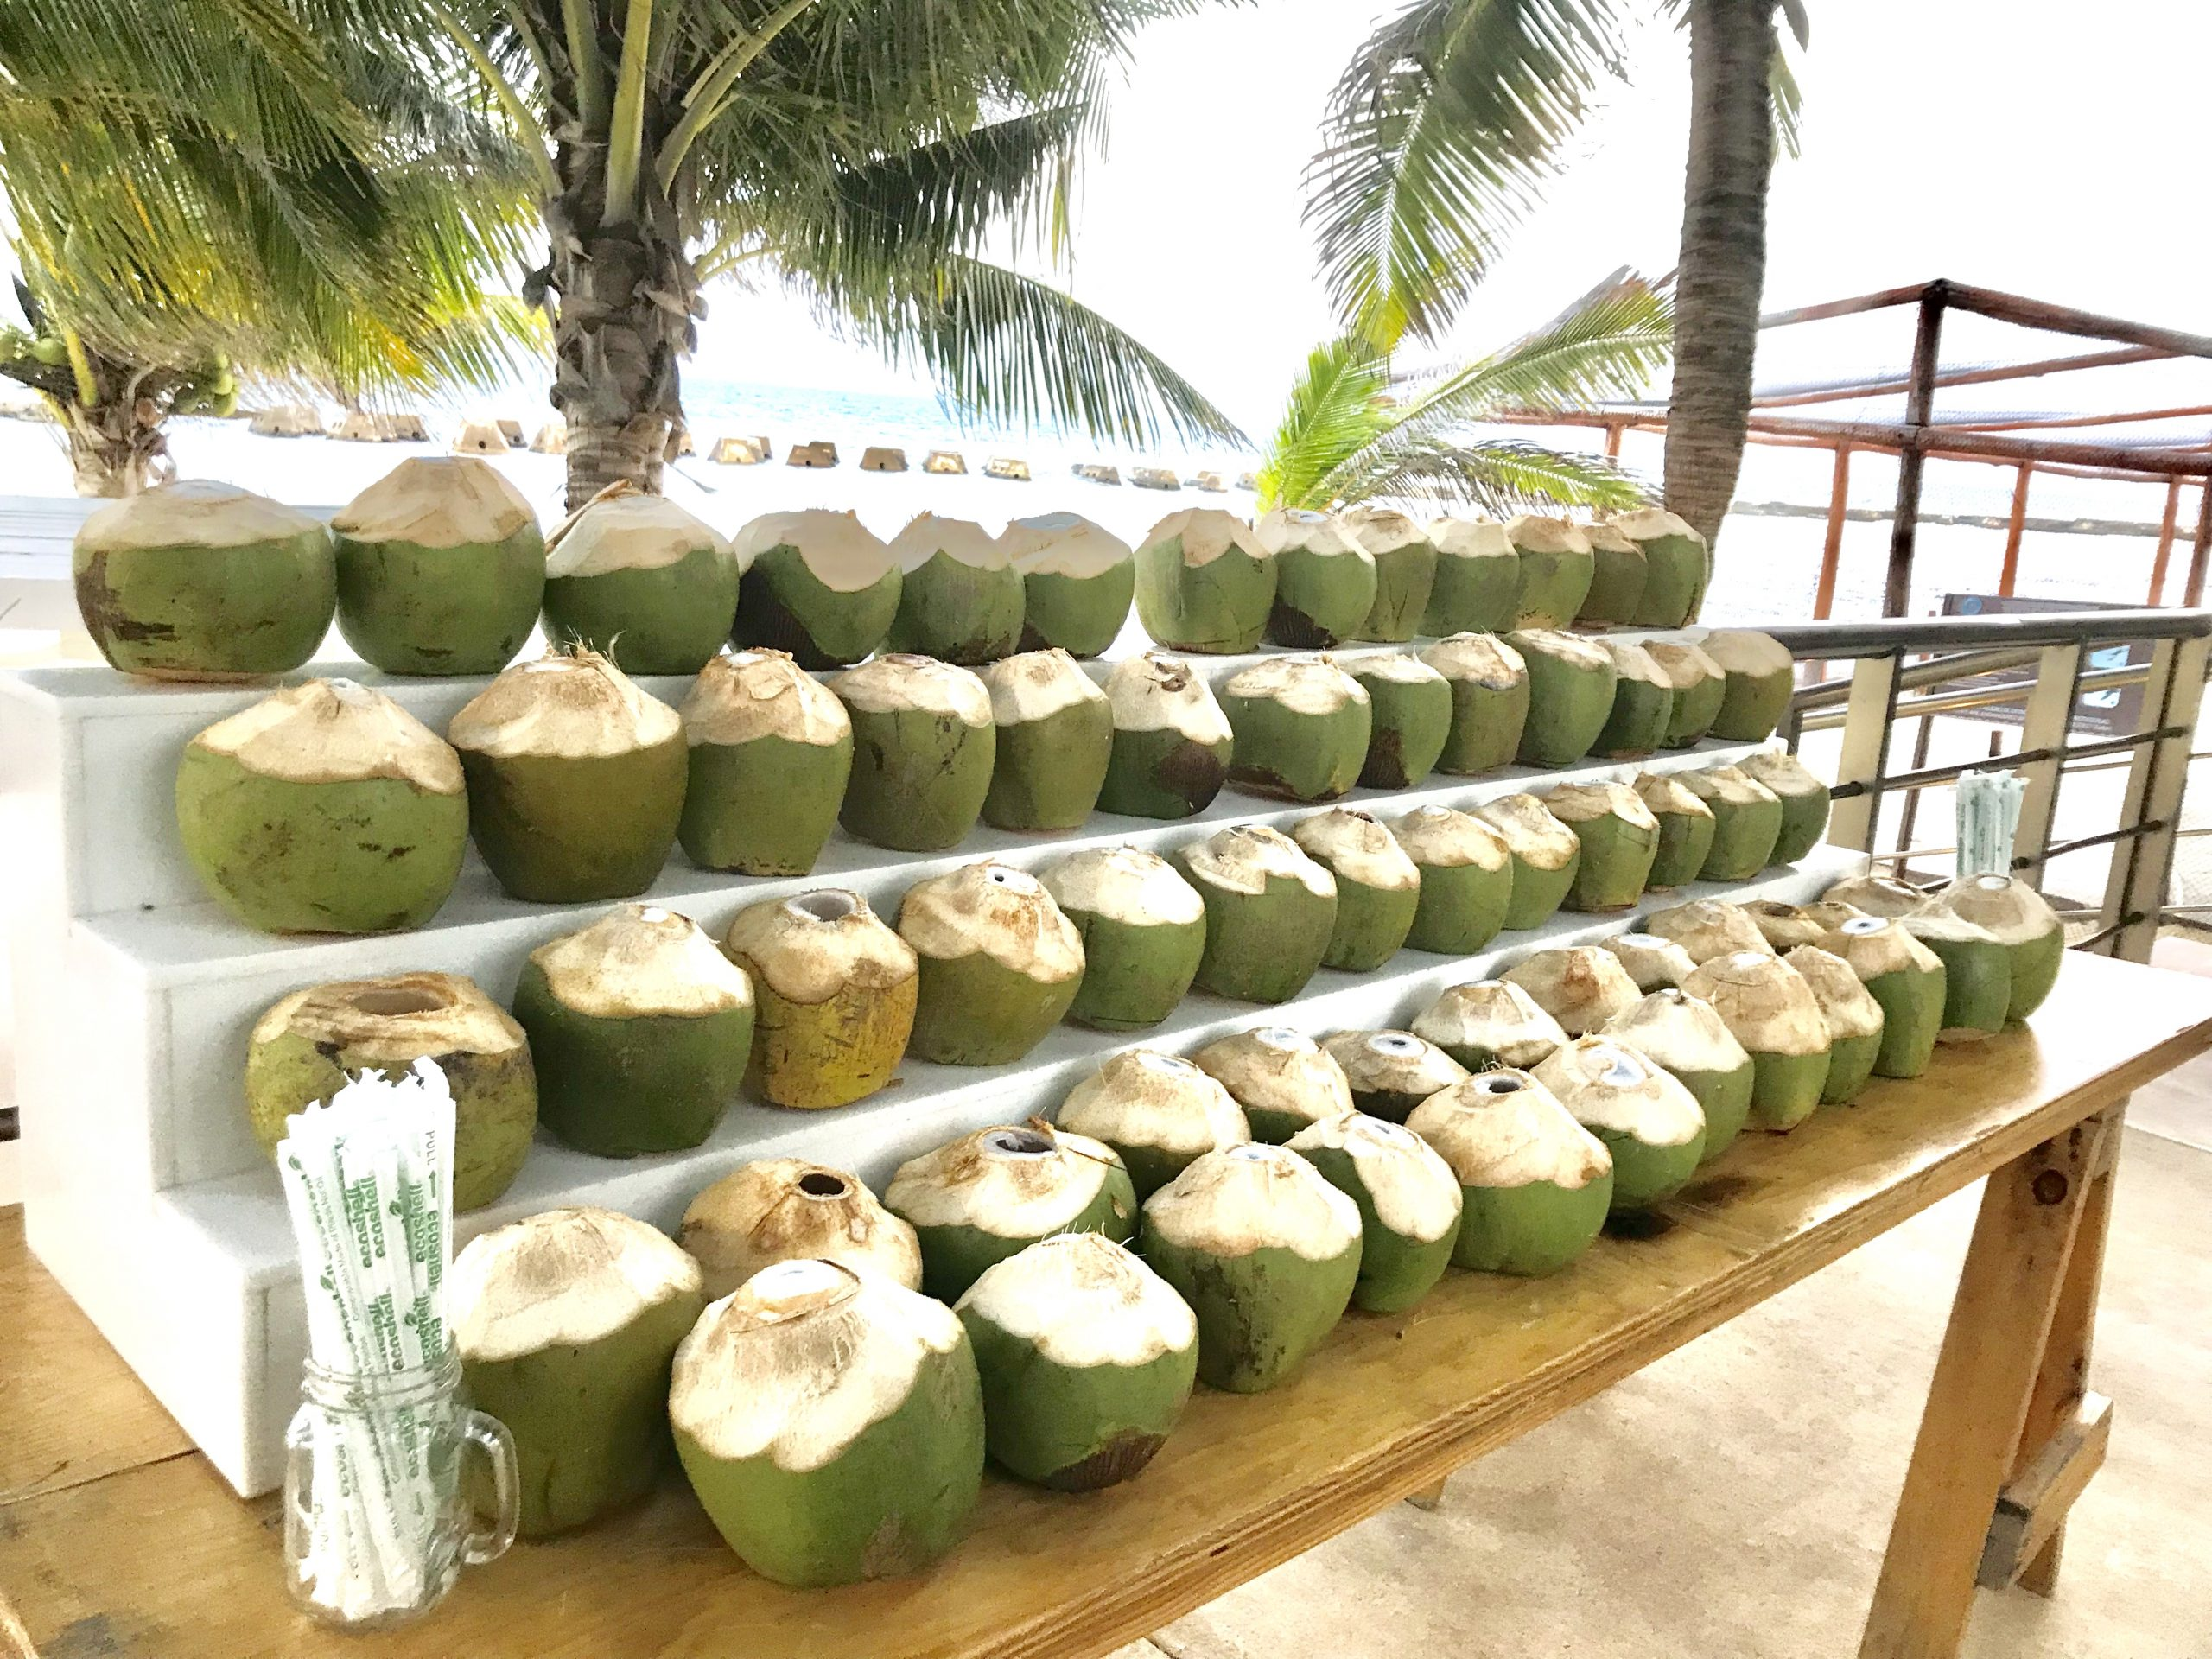 coconuts cost for a destination wedding in cancun by latin asia one stop solution